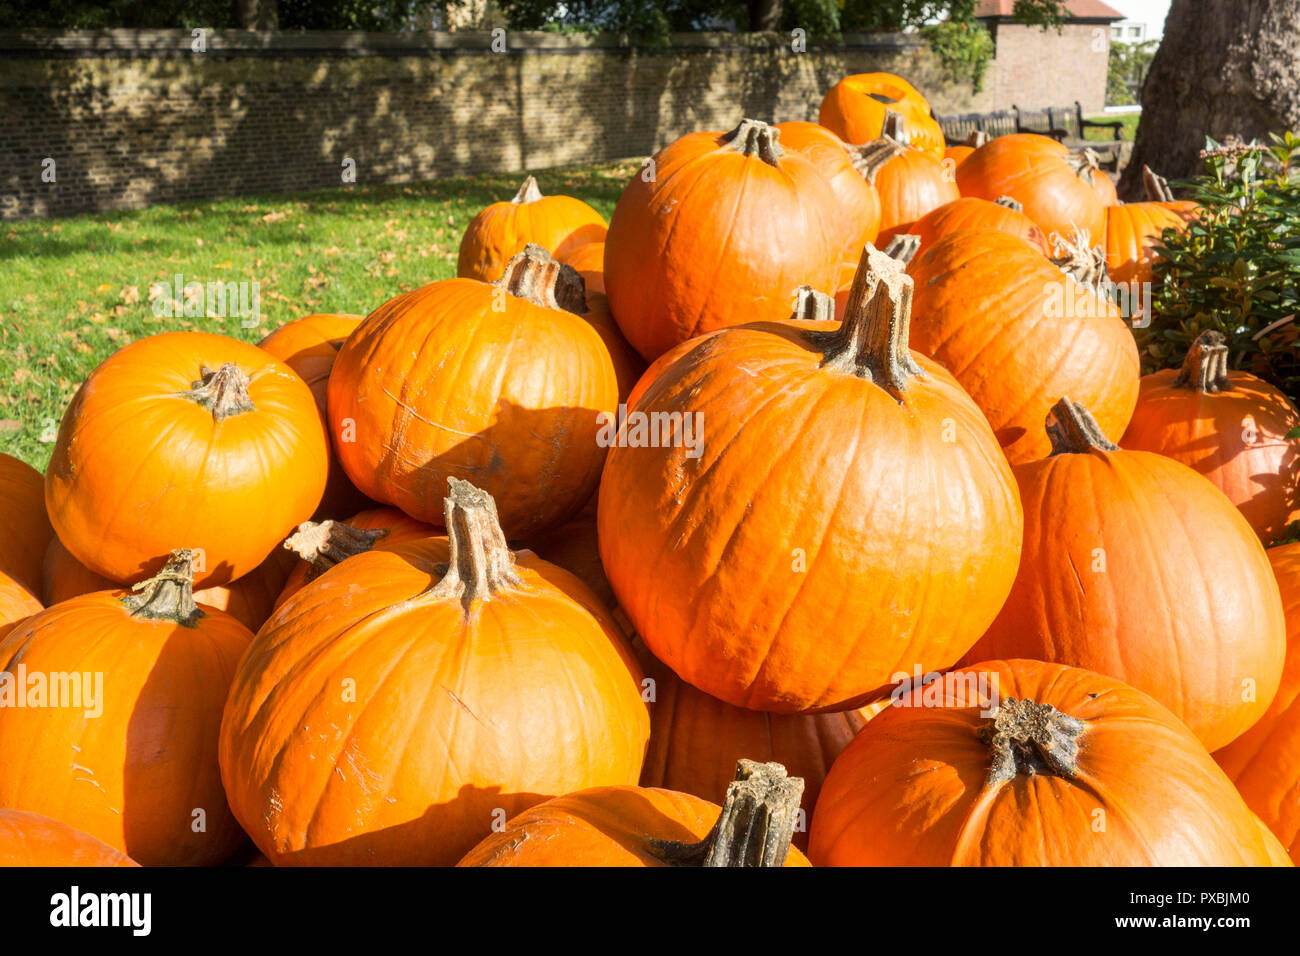 A pile of Halloween antioxidant and nutritious pumpkins ready to be turned into jack-o'-lantern outside a greengrocers in England, UK - Stock Image